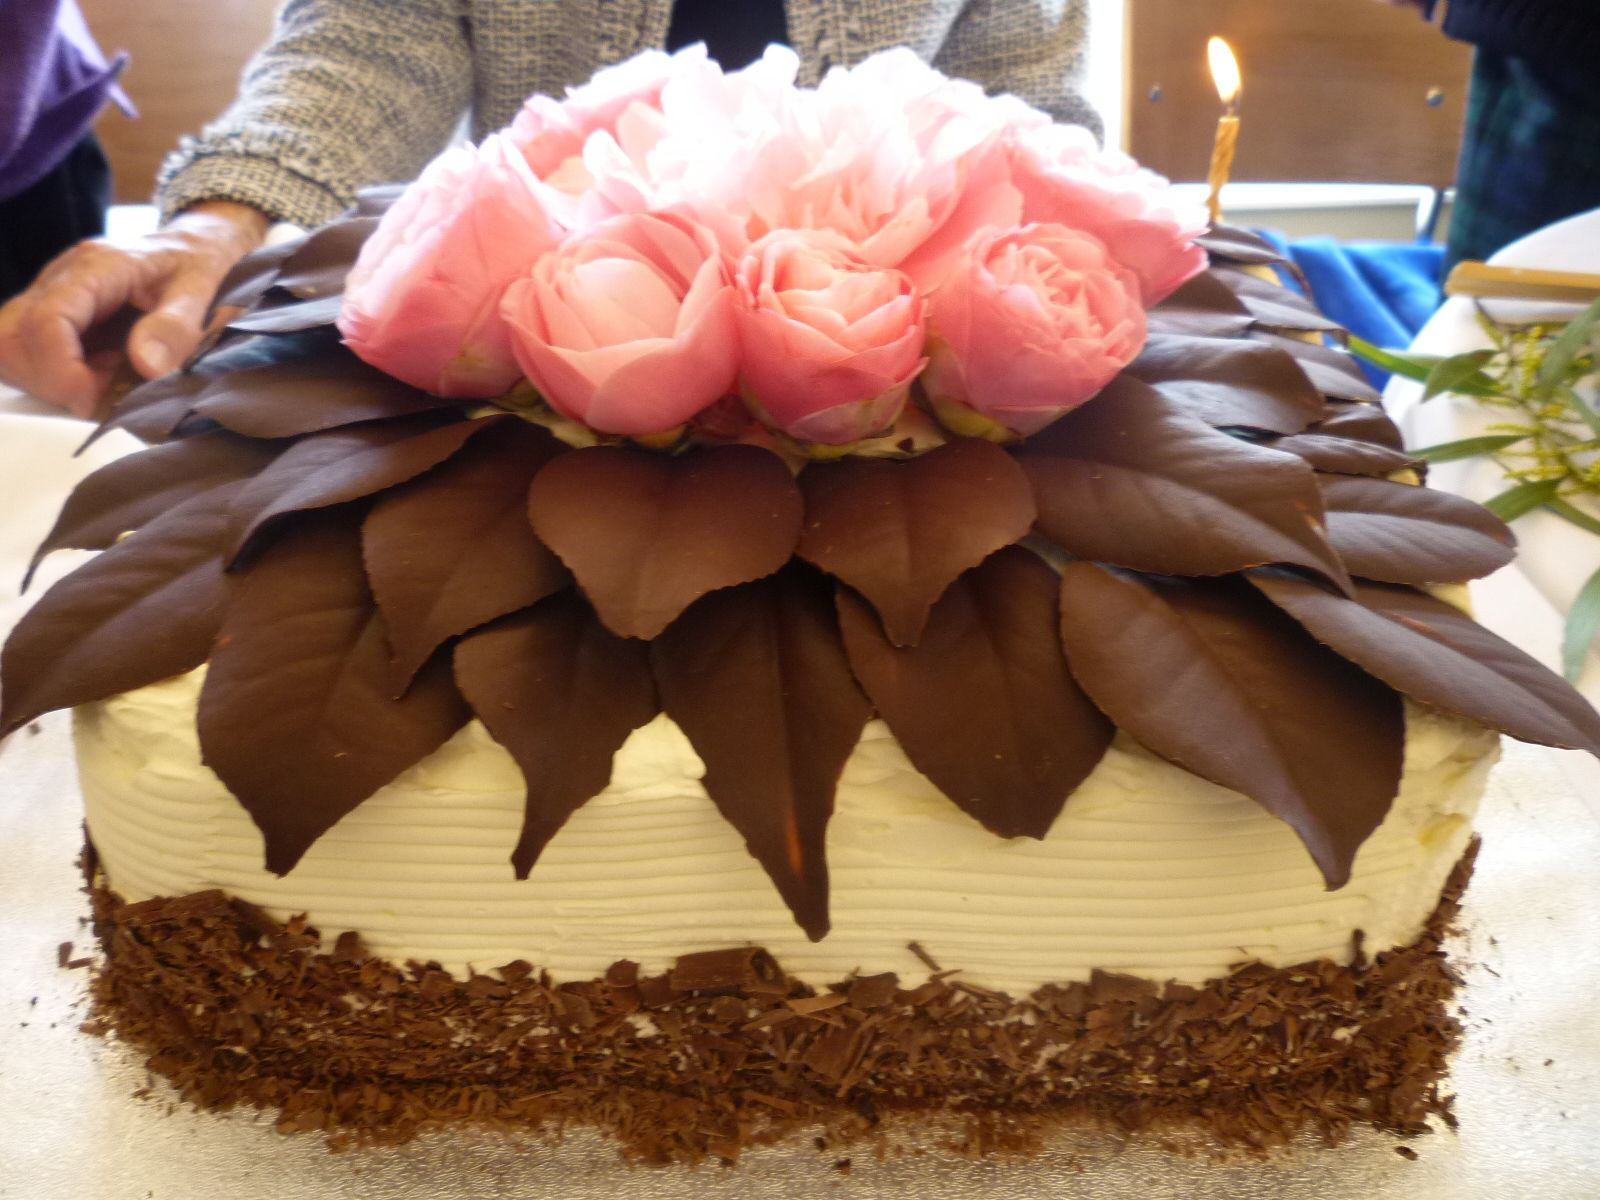 Cake Decorating Classes Des Moines : Pin Pin 27 Piece Quick Weave Hairstyles I5jpg Picture On Pinterest Cake on Pinterest